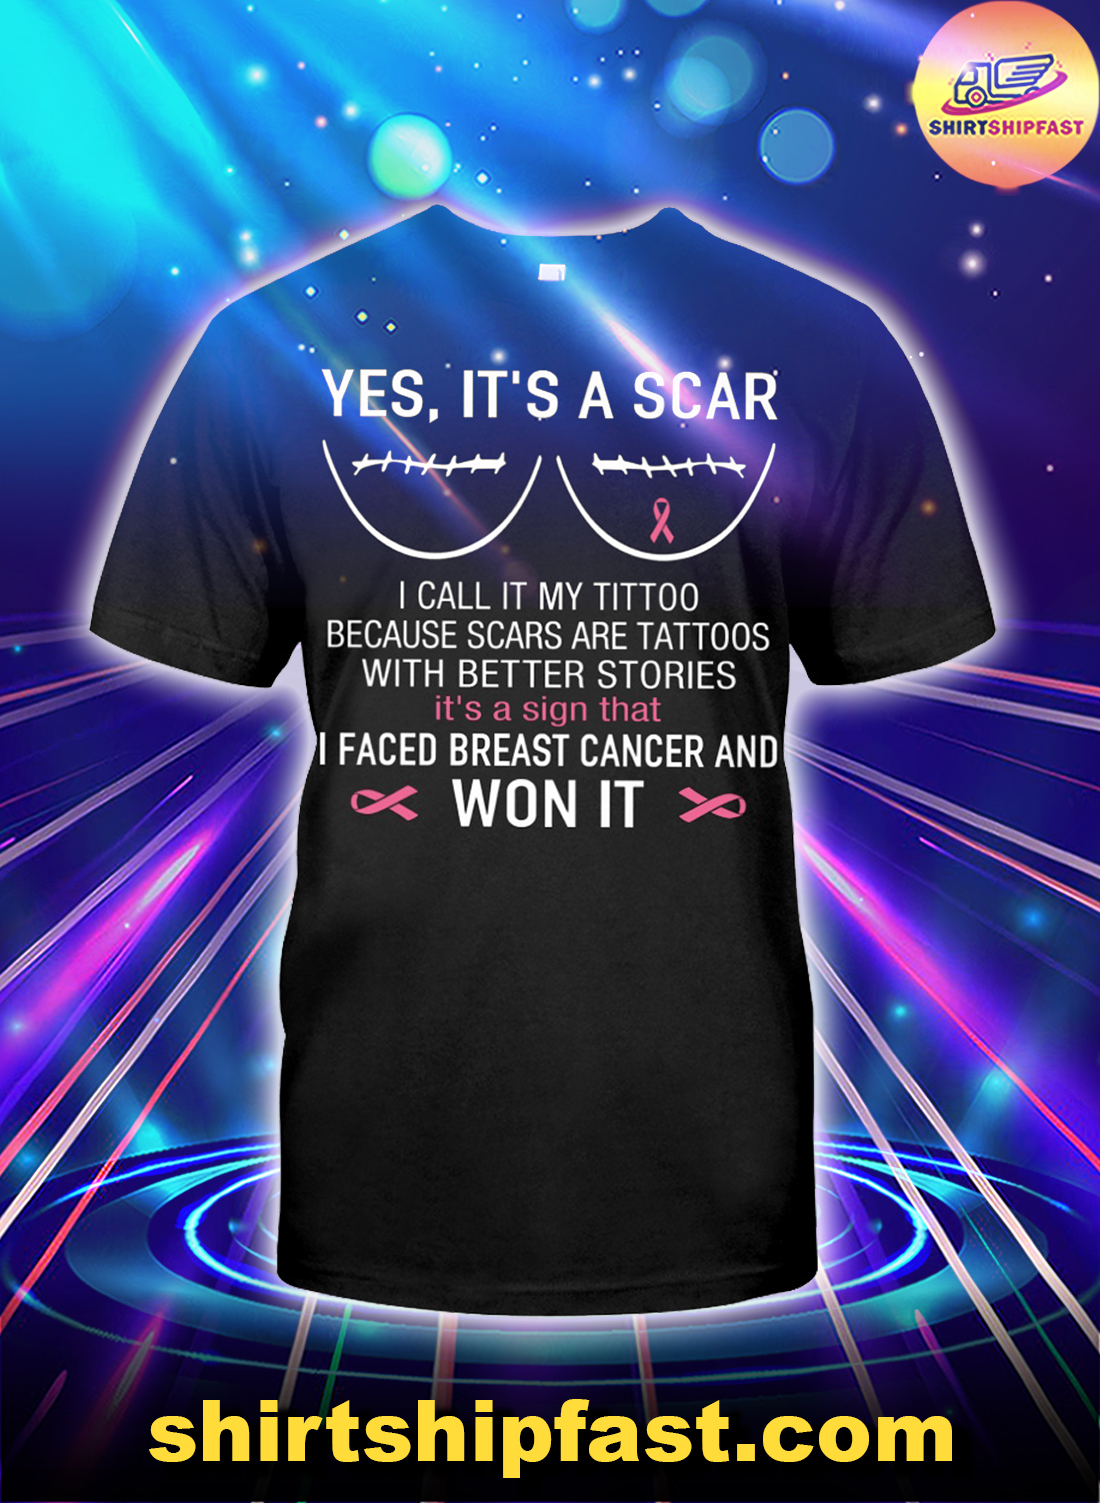 Yes It's a scar I faced breast cancer and won it shirt